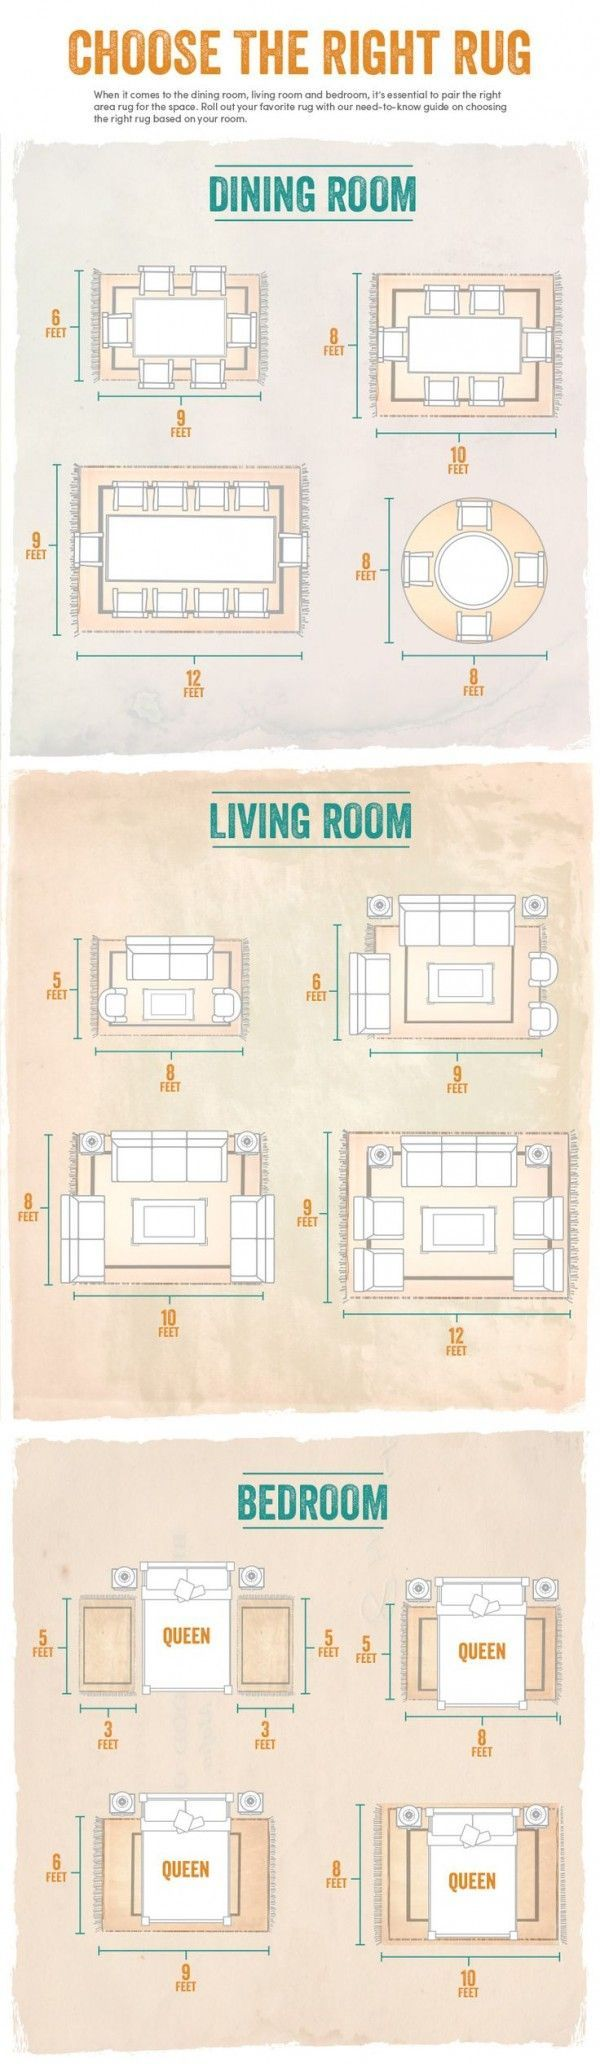 15 Home Decor Cheat Sheets That Will Have You Decorate Like a Pro | Industry Standard Design